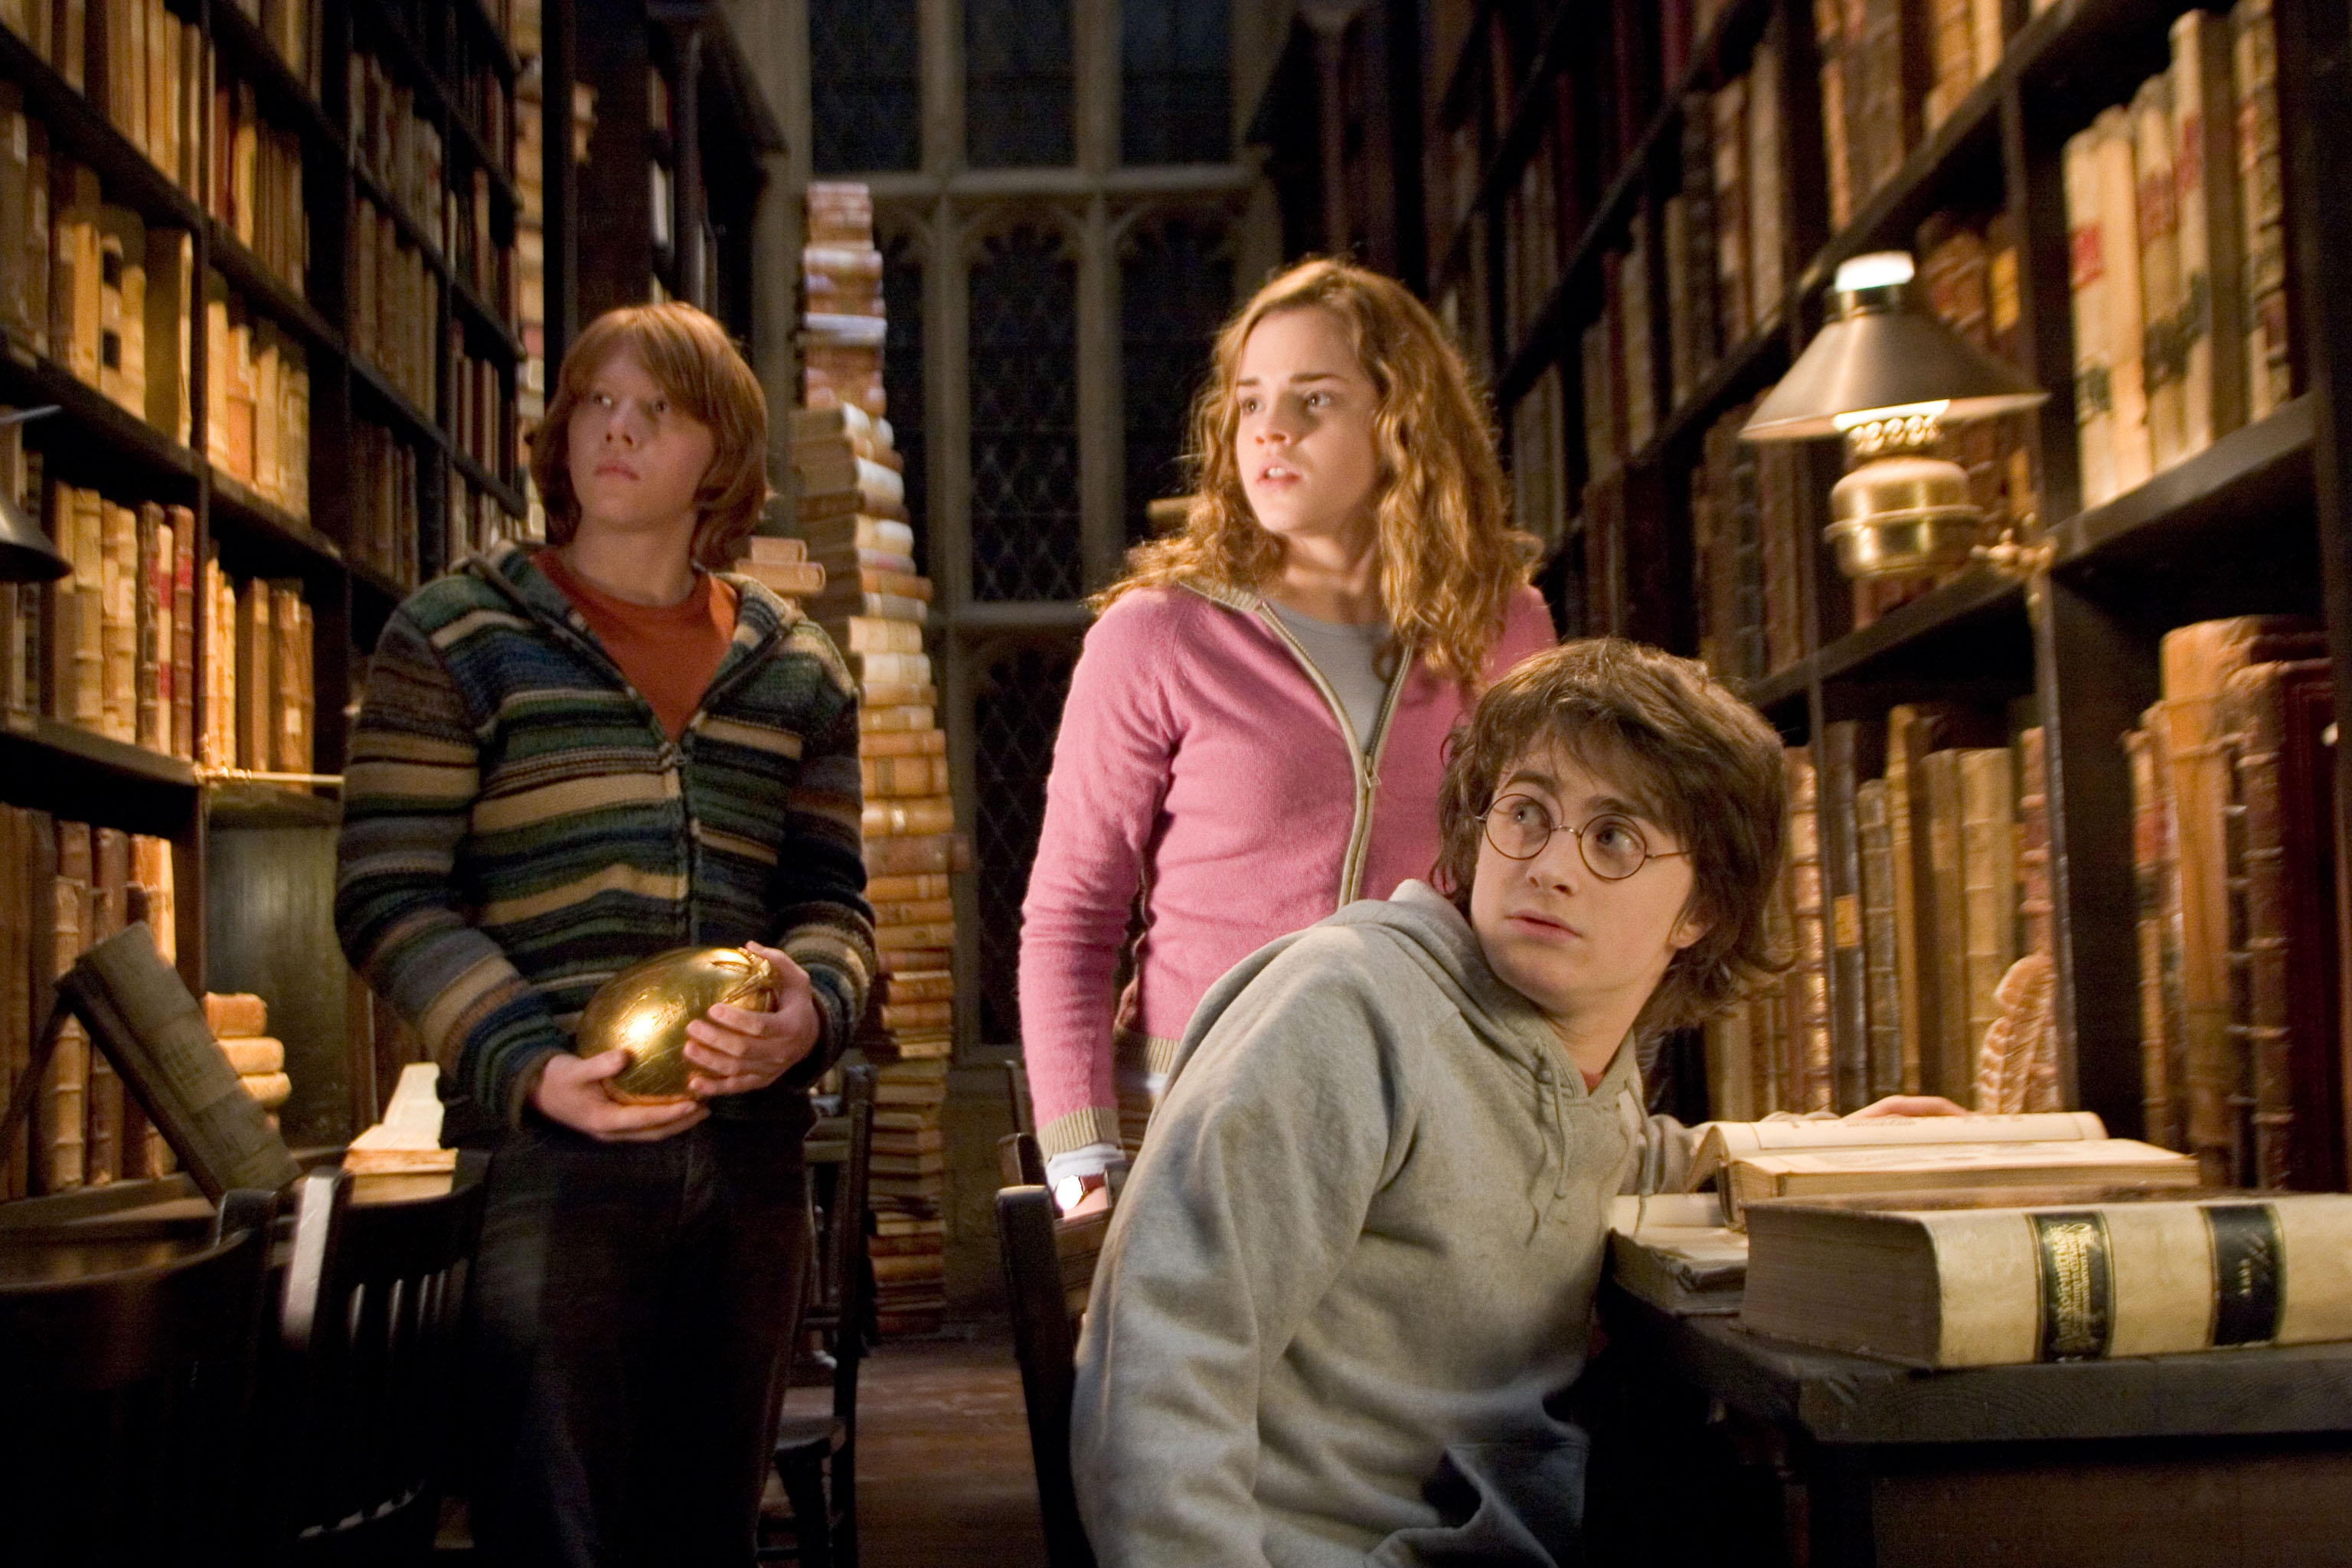 http://images1.wikia.nocookie.net/__cb20090921094326/harrypotter/fr/images/1/1f/Hp4screen24.jpg